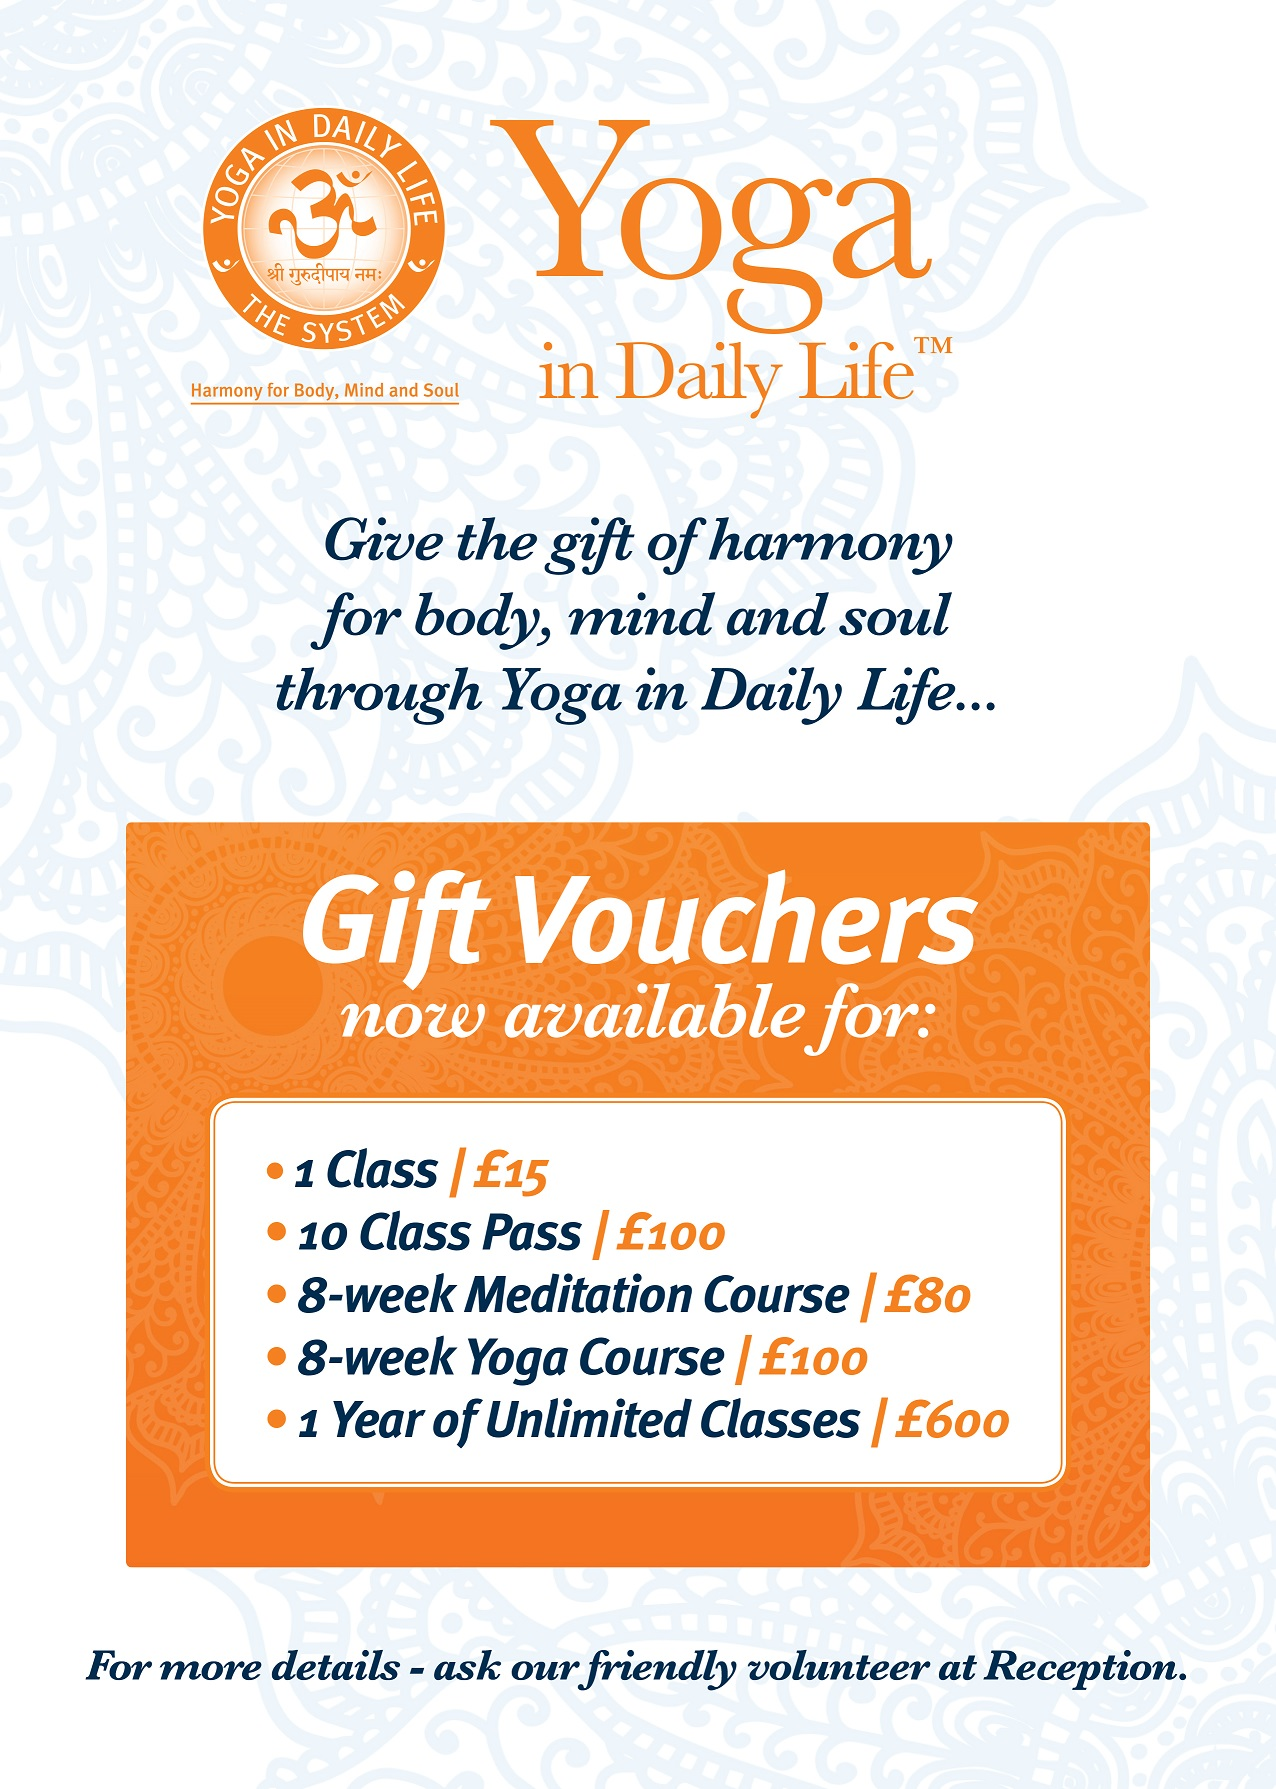 Gift Vouchers Poster